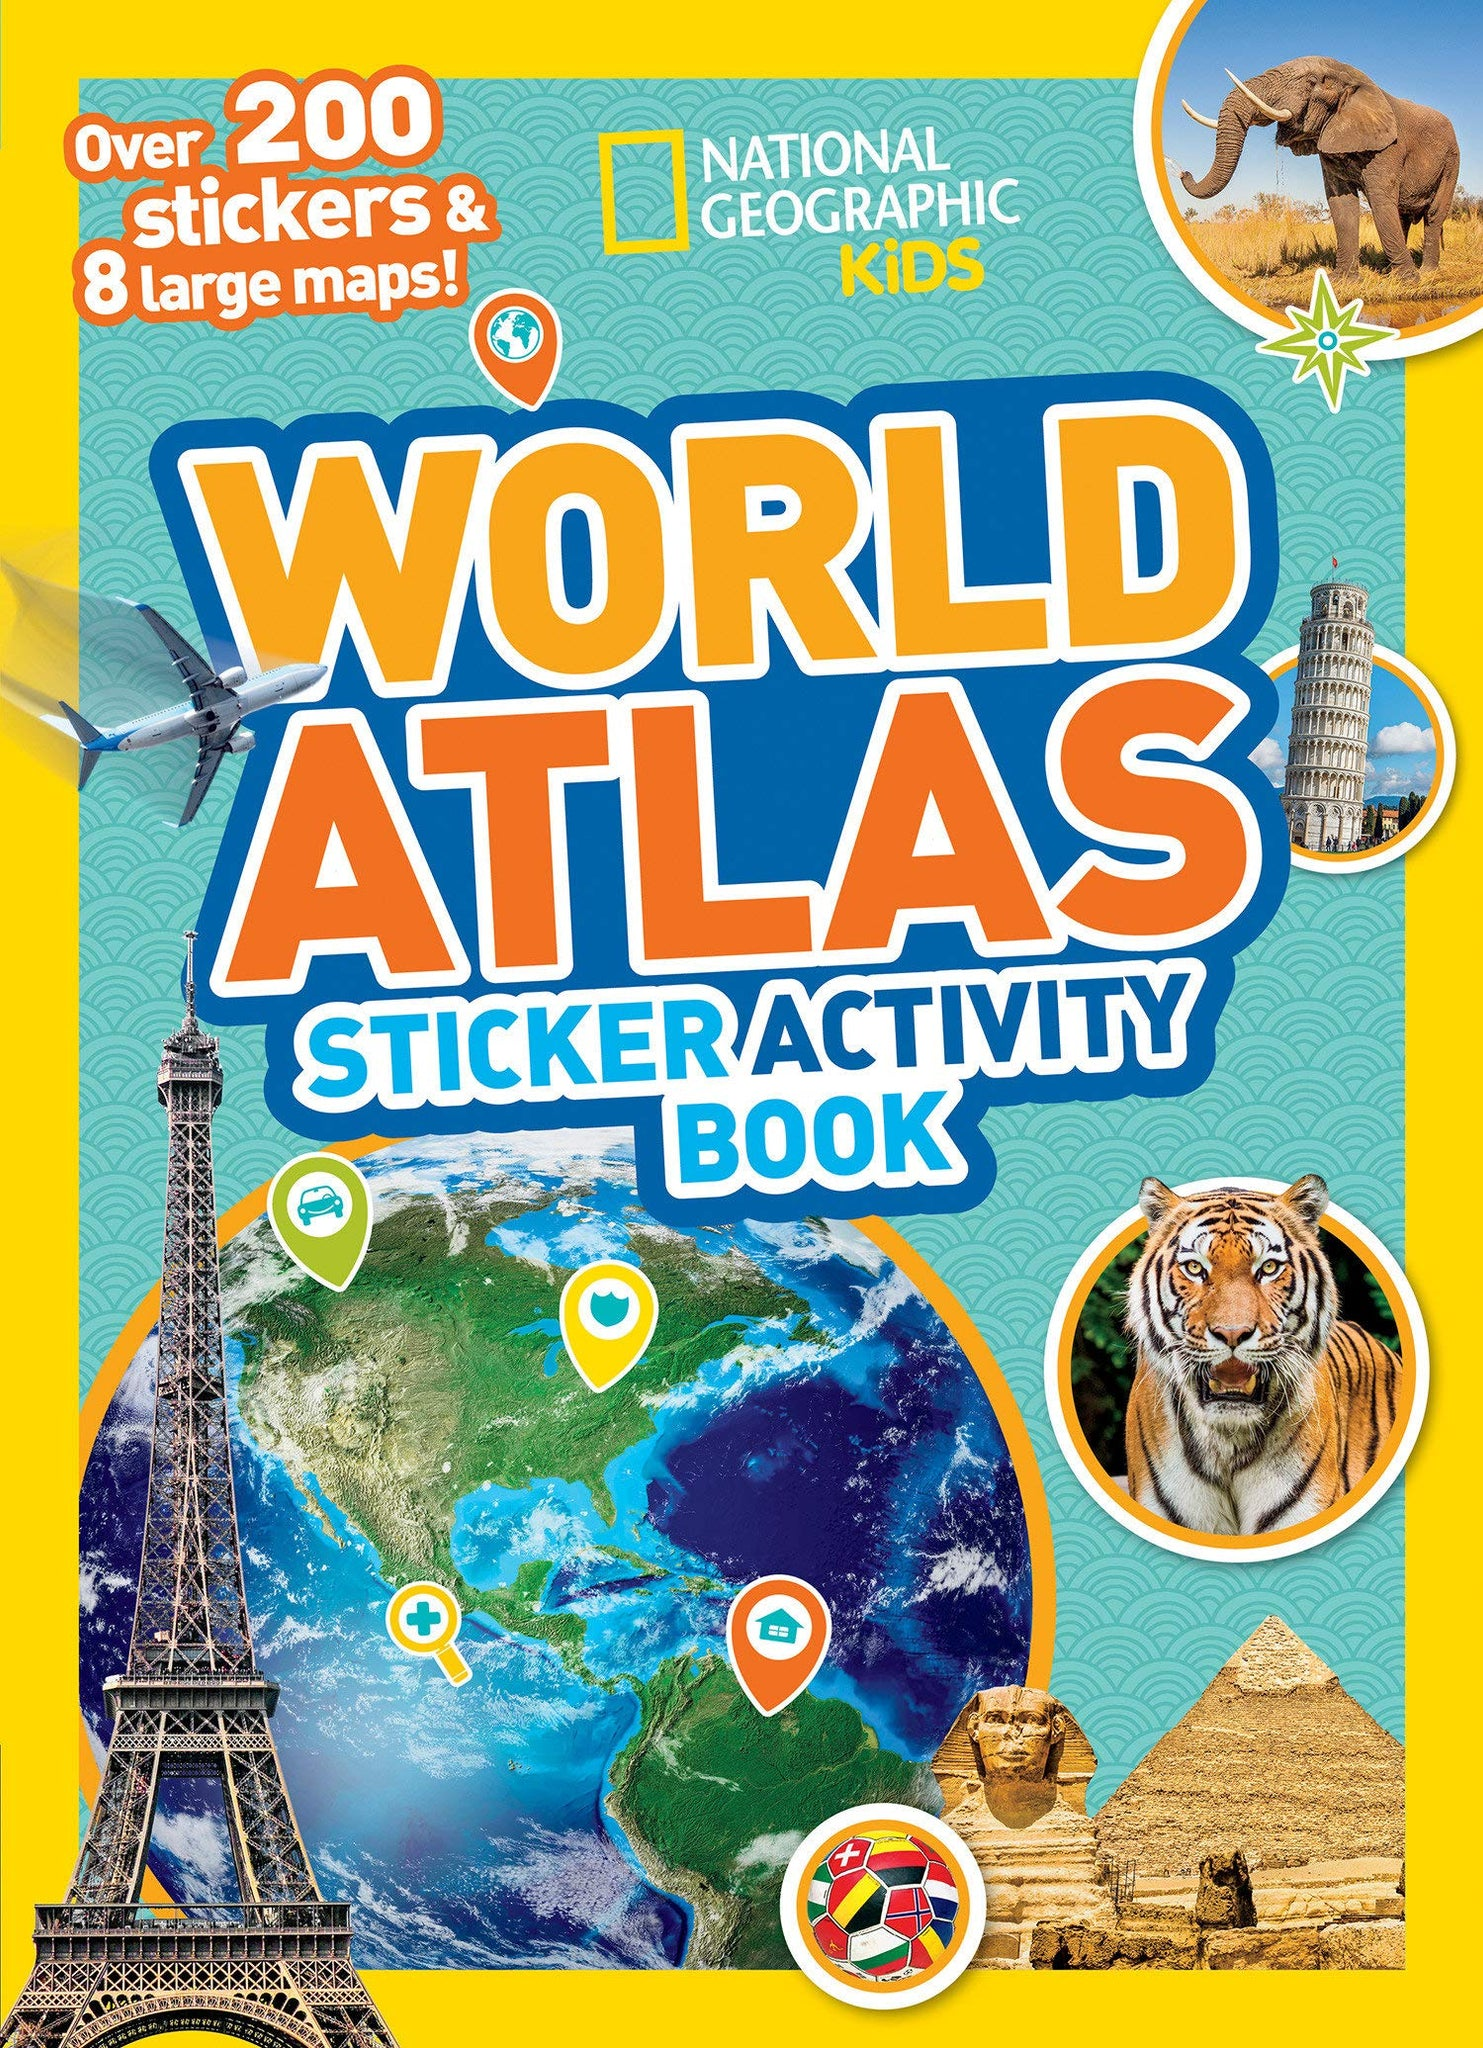 National Geographic World Atlas Sticker Activity Book